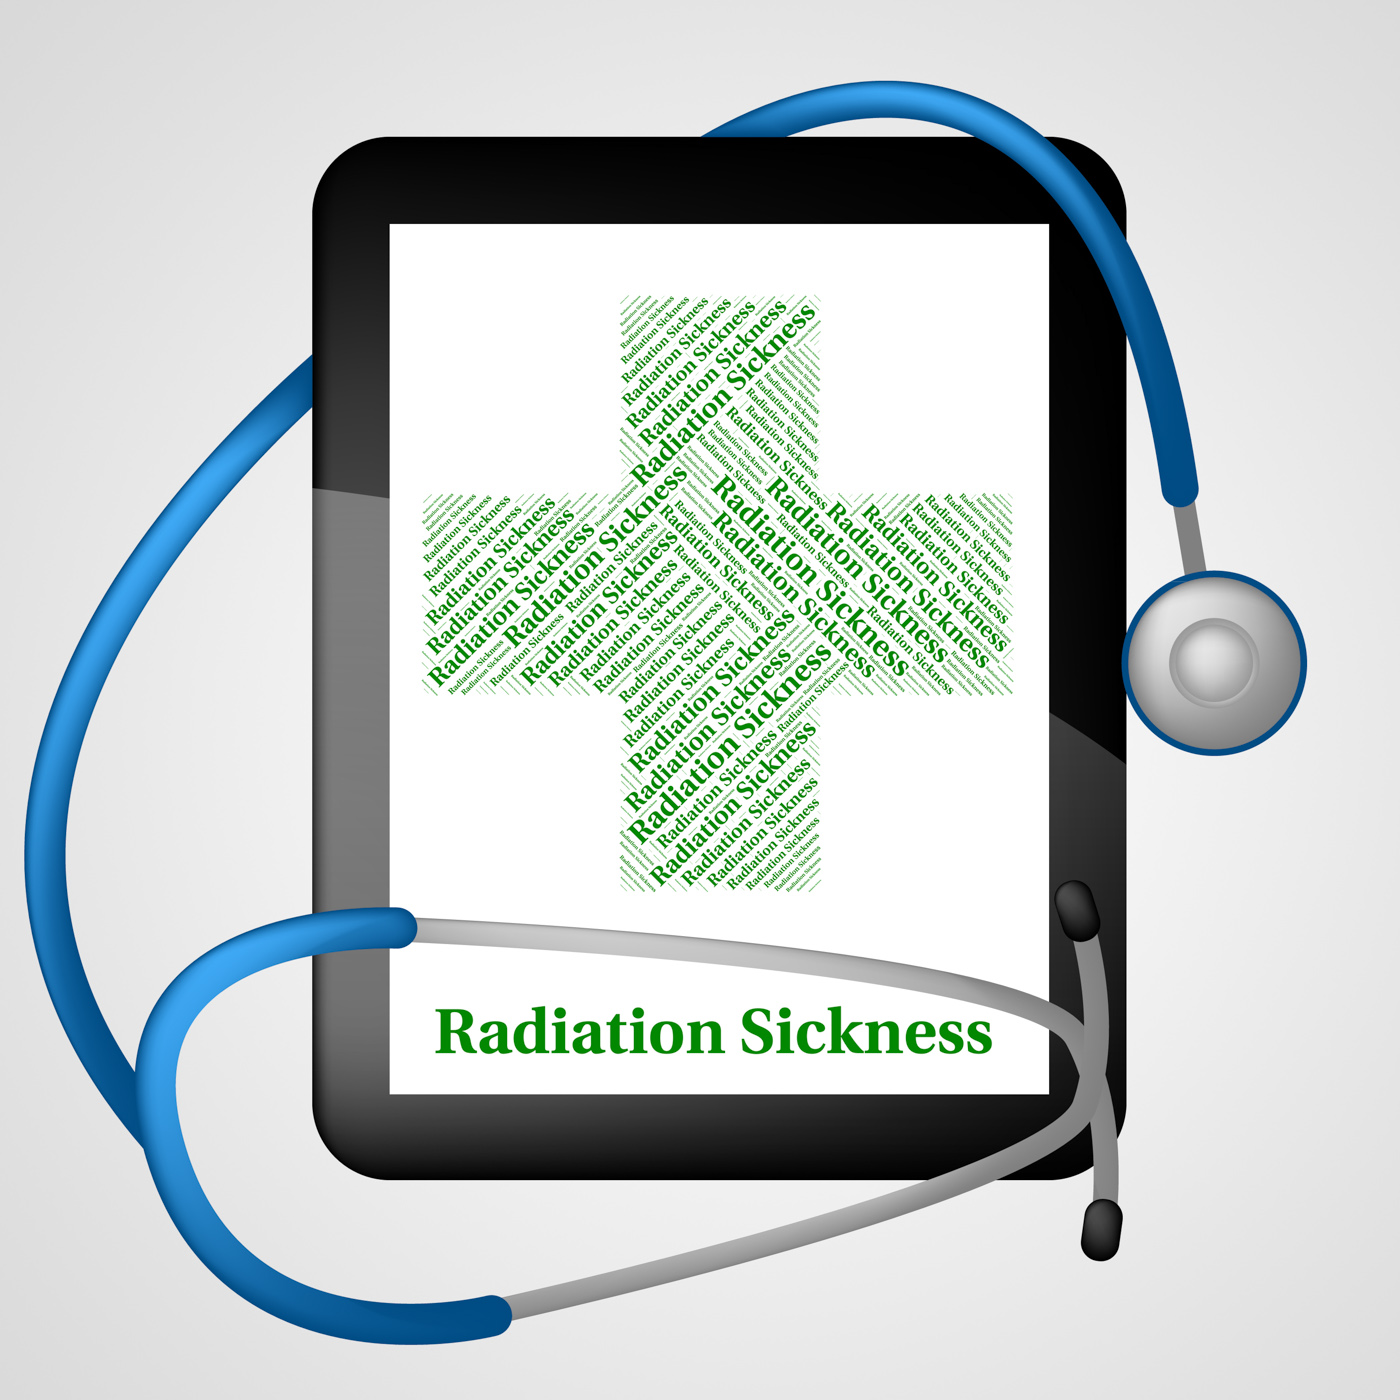 Radiation sickness represents poor health and acute photo